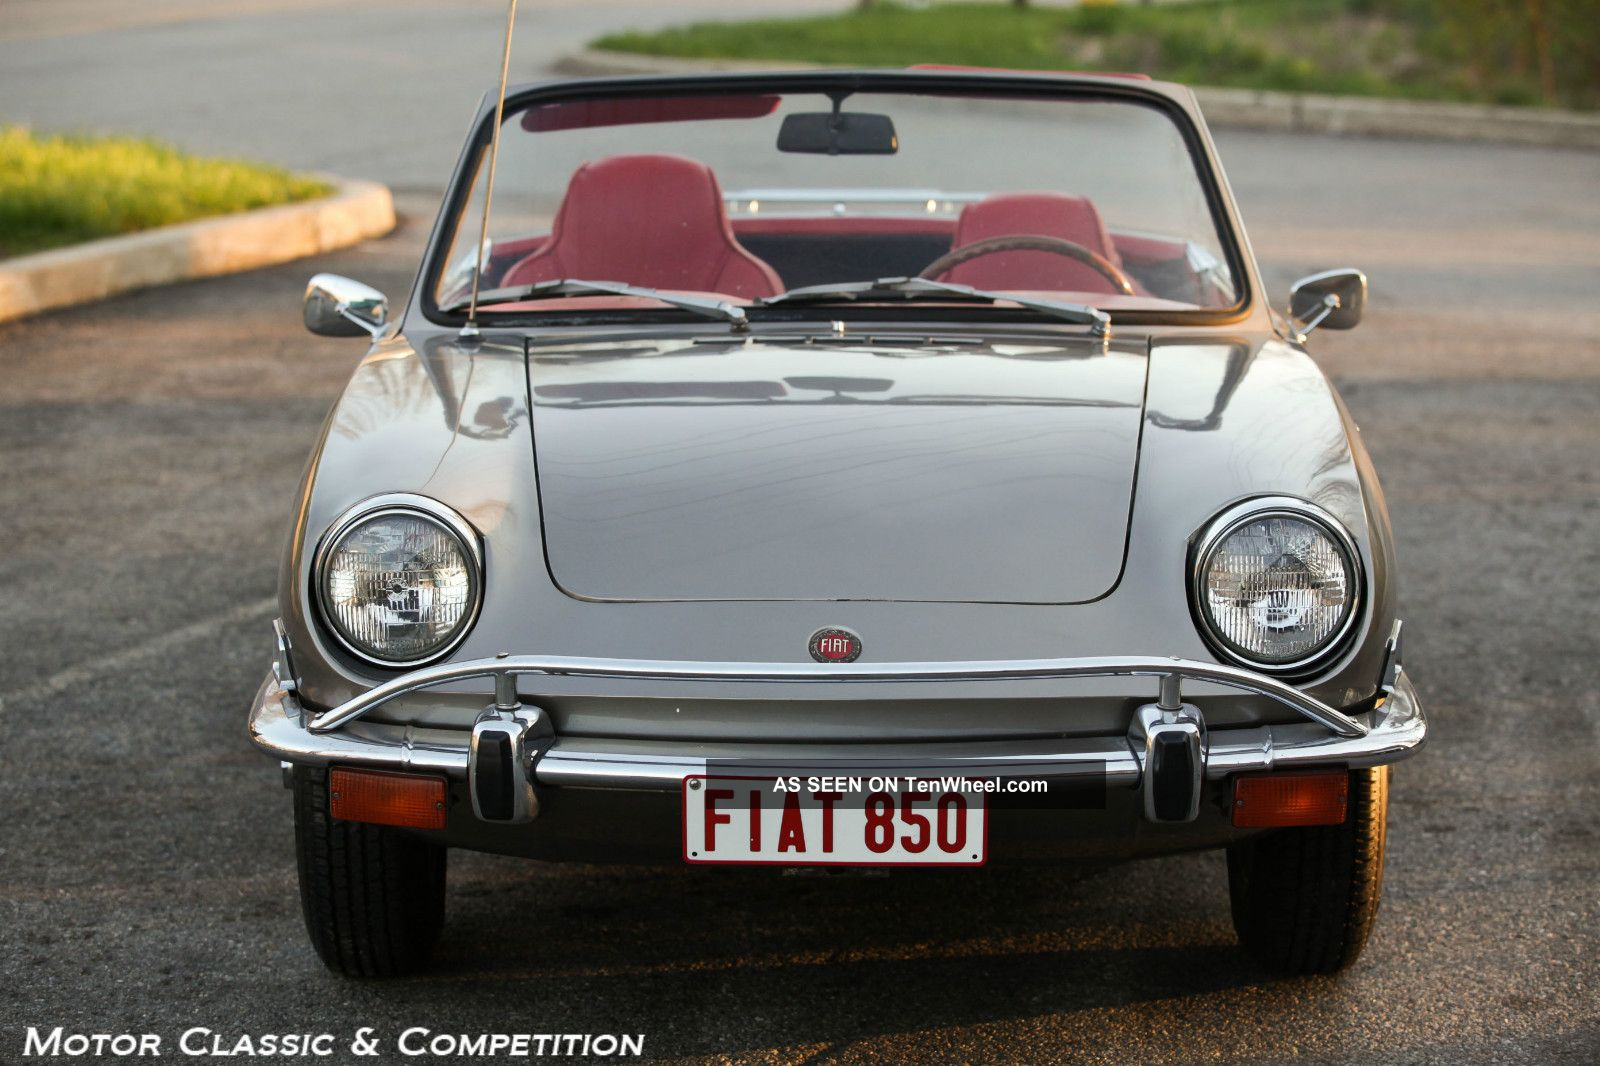 similiar fiat spyder wire wheels keywords 1971 fiat 850 spider and charismatic wire wheels and luggage rack